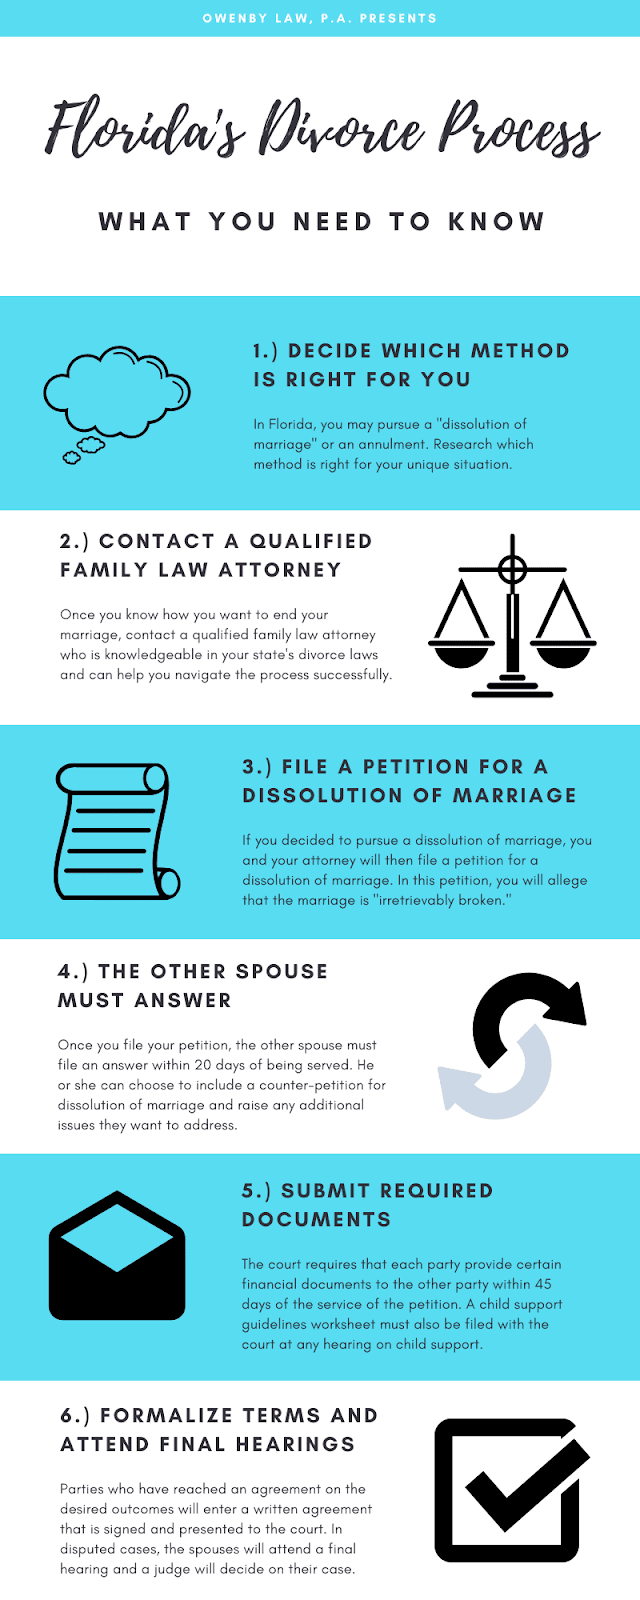 an infographic showing florida's divorce process